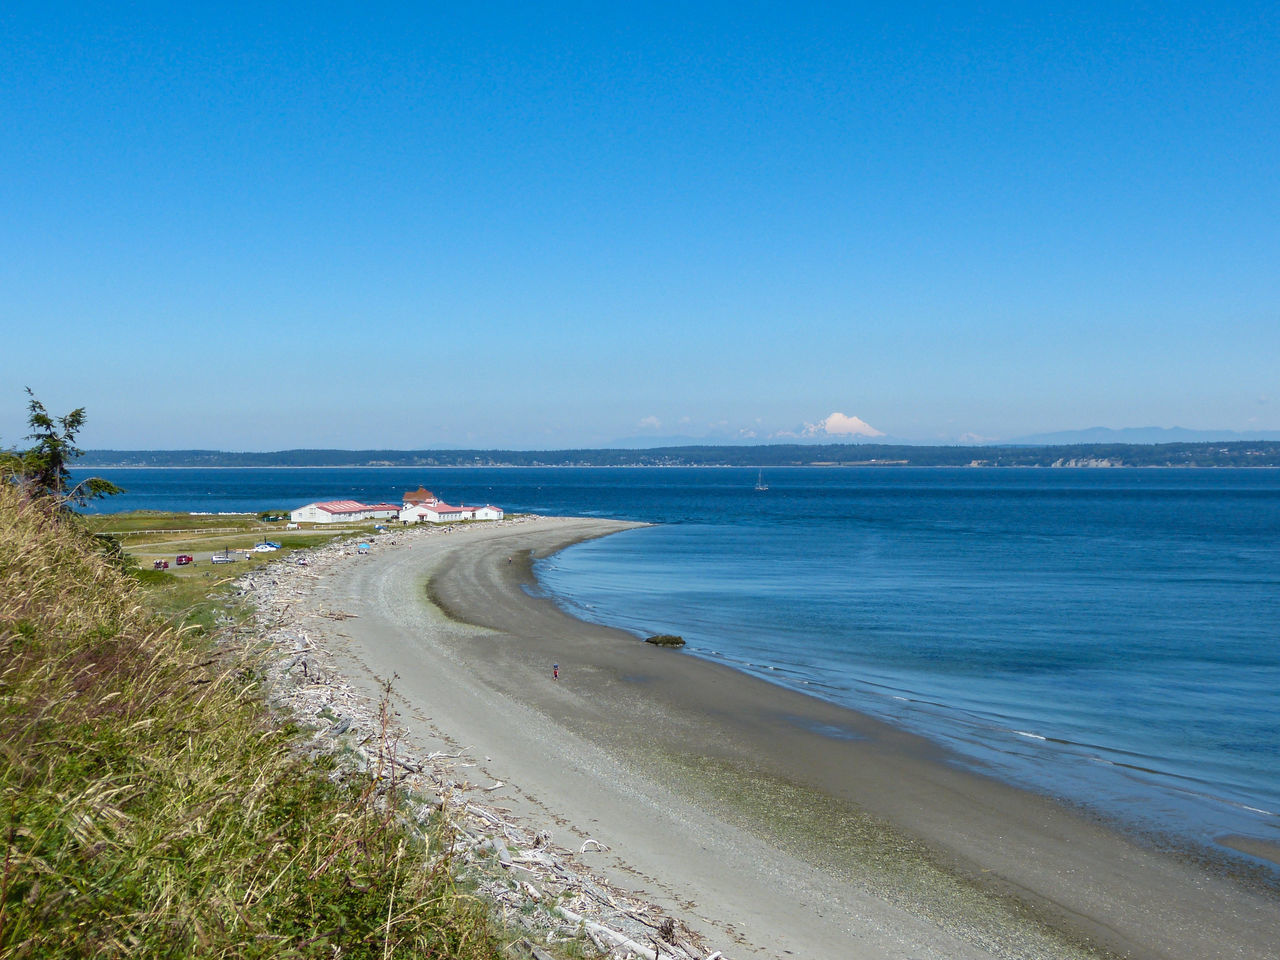 Beach Beach Photography Beachphotography Beauty In Nature Cascade Mountains Clear Sky Coastline Horizon Over Water Mt. Baker Puget Sound, Washington Sand Sea Shore Water